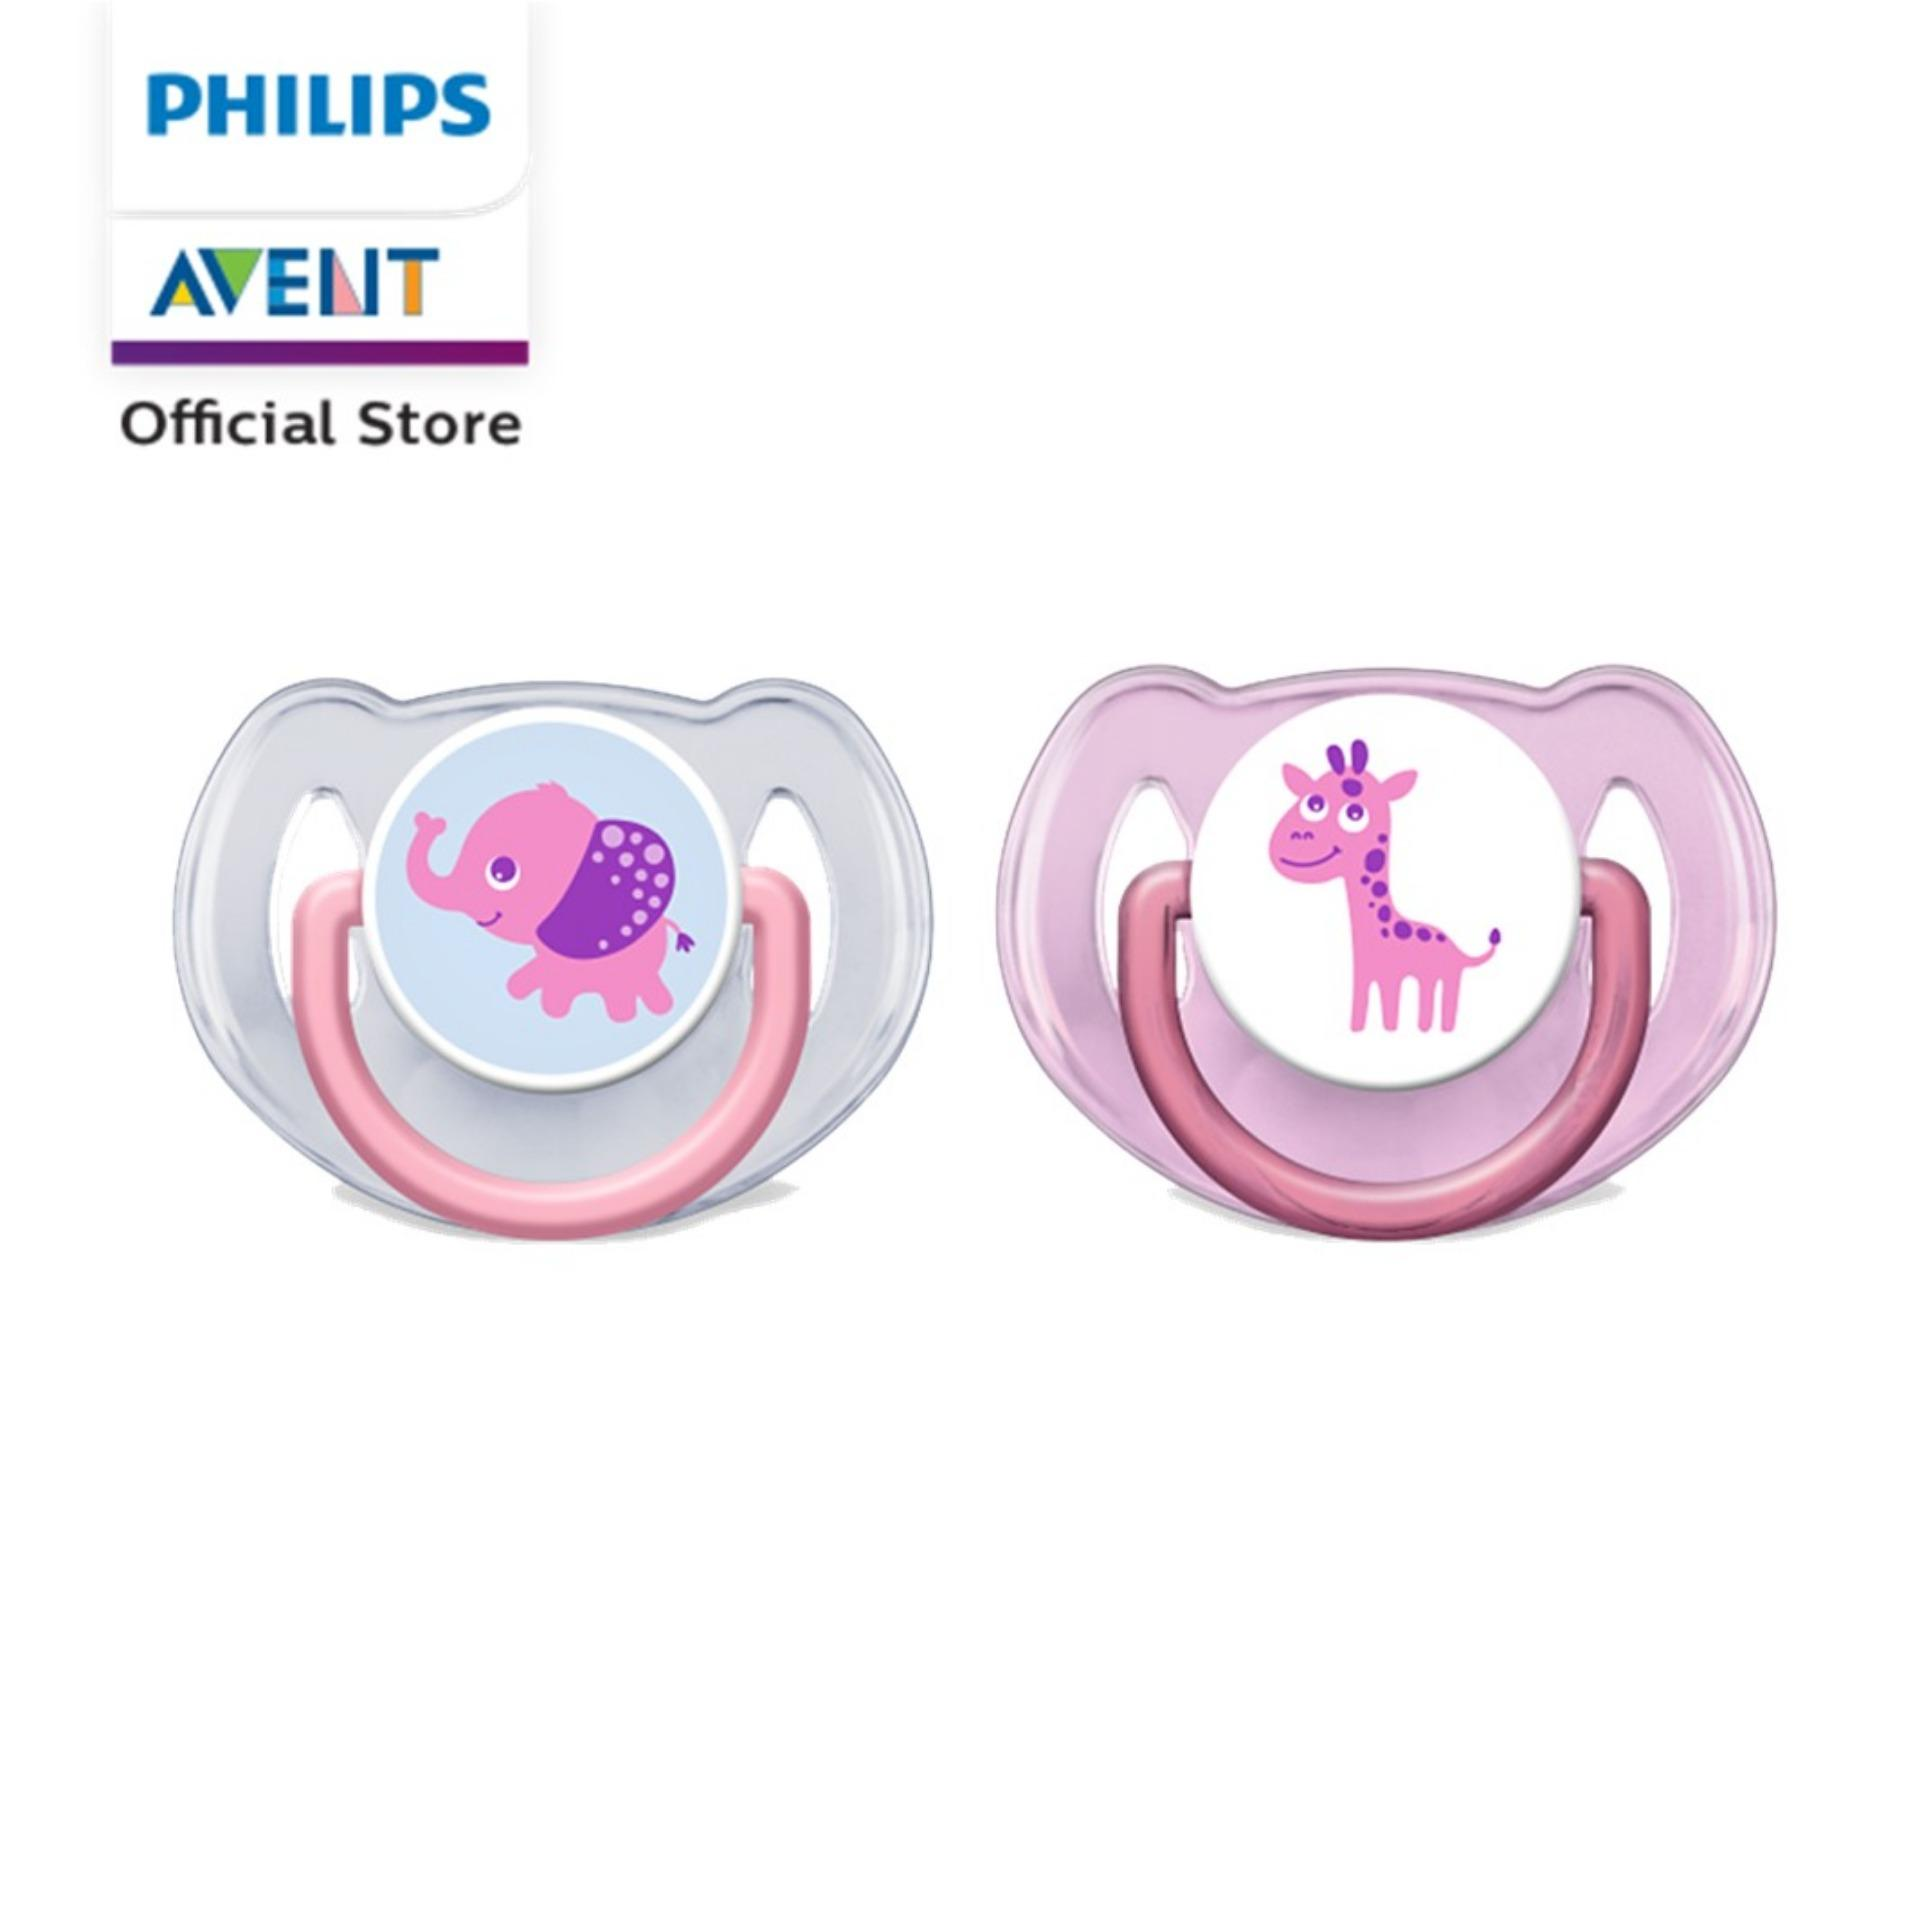 Philips Avent Soothie Pacifier 2 Pack Blue Price In Singapore Orthodentic Soother 6 18m Pink Scf 195 22twin Pack6